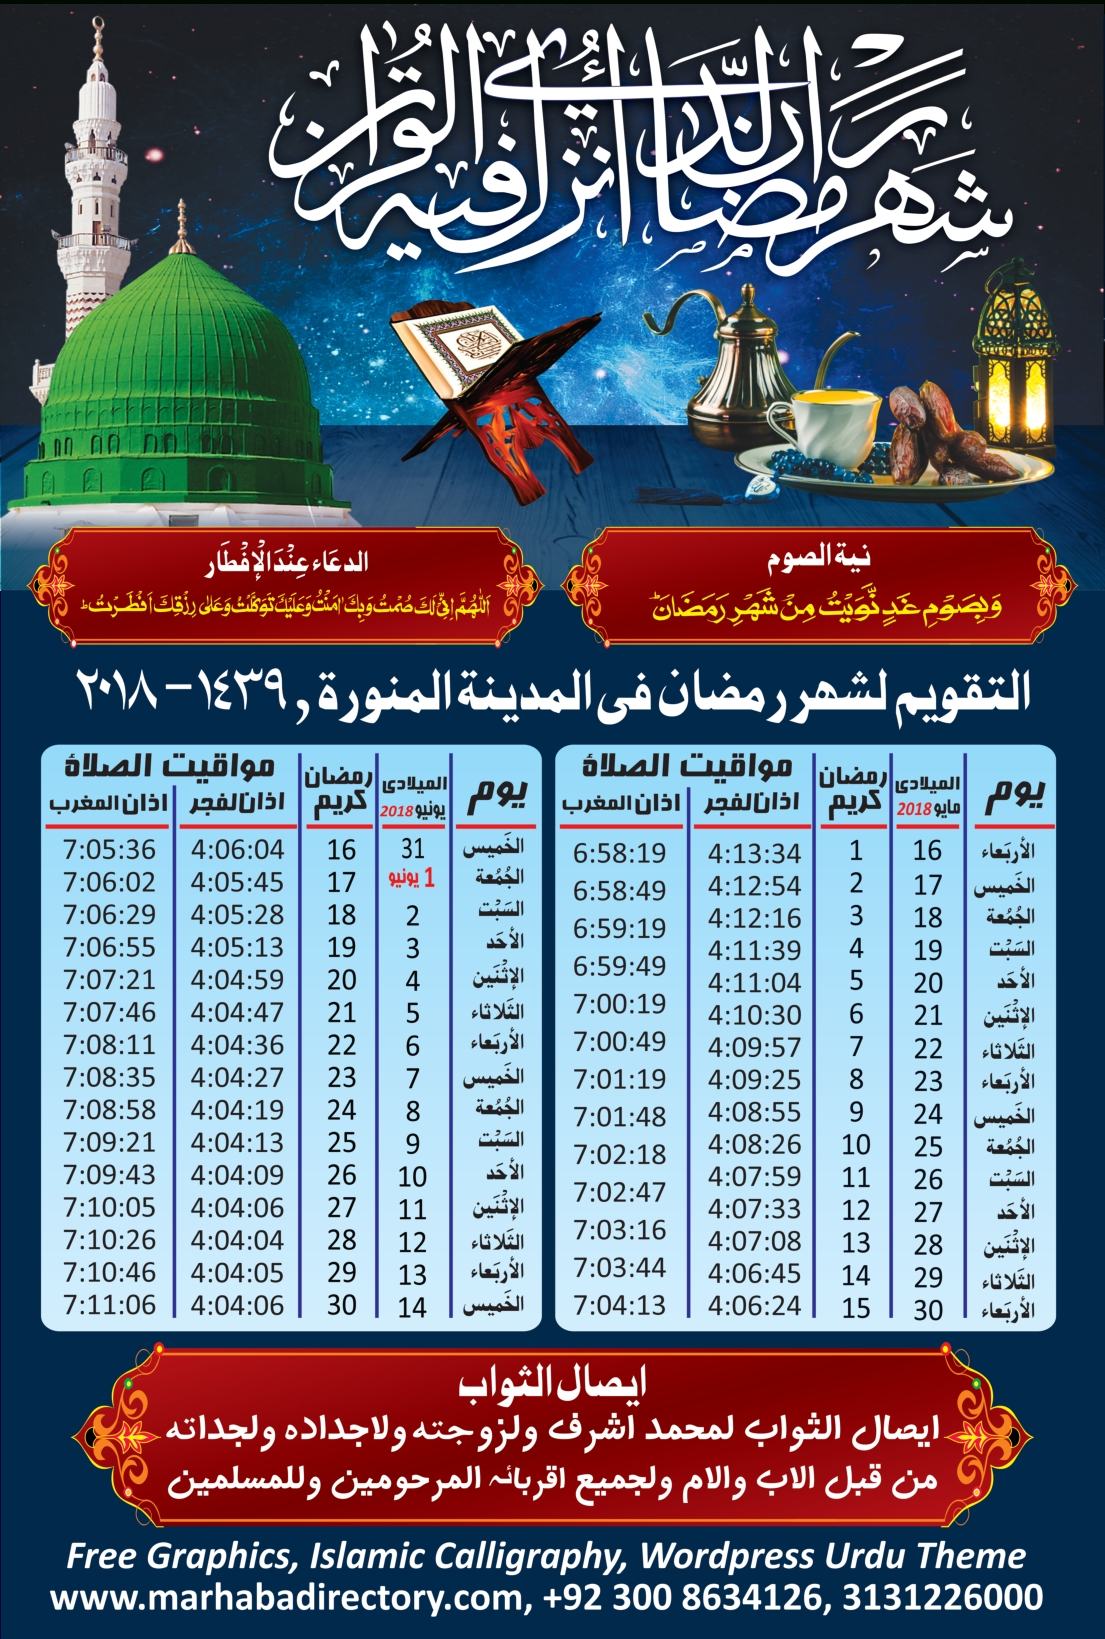 Ramadan Calendar 2018 throughout Ramadan Calendar Of Saudi Areabia